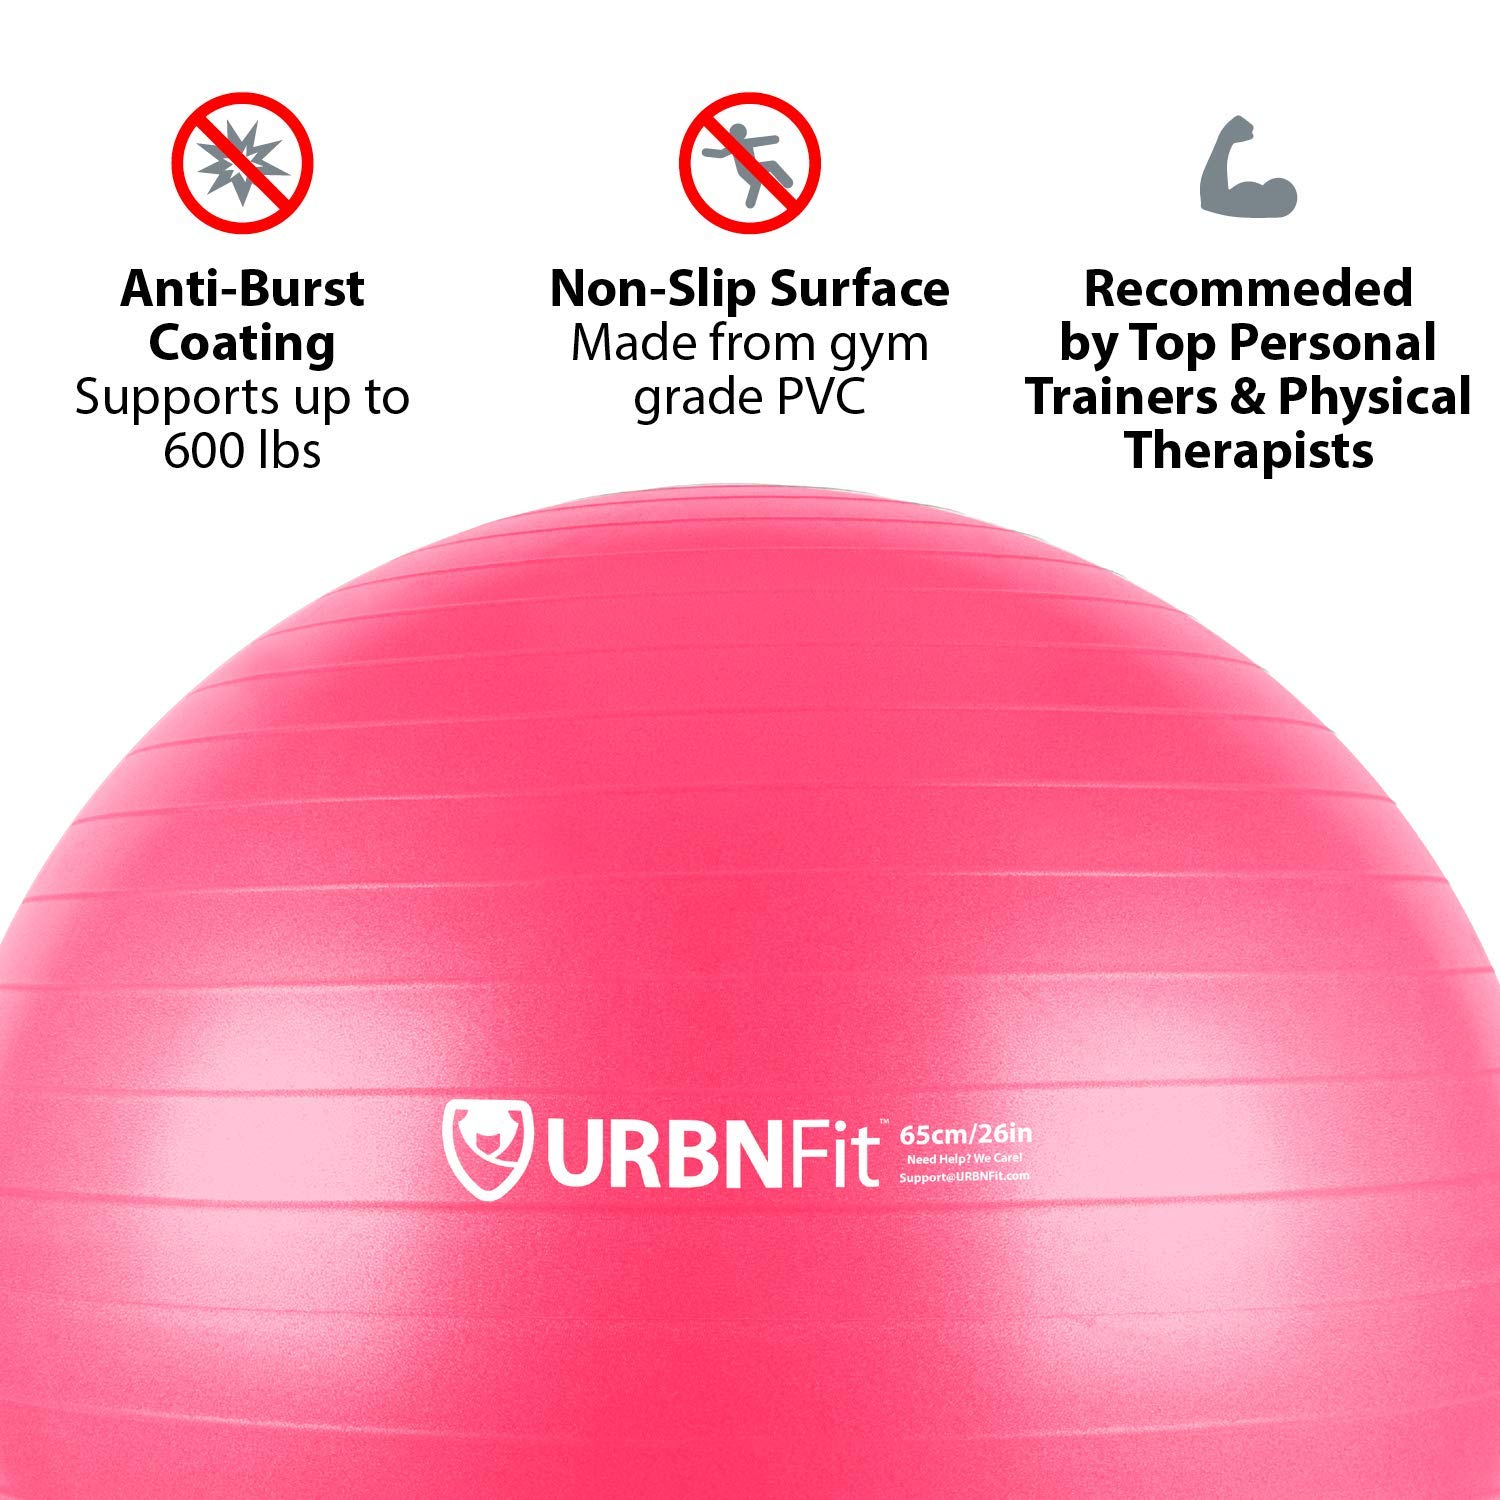 URBNFit Exercise Ball (Multiple Sizes) for Fitness, Stability, Balance & Yoga - Workout Guide & Quick Pump Included - Anit Burst Professional Quality Design (Pink, 45CM) by URBNFit (Image #3)